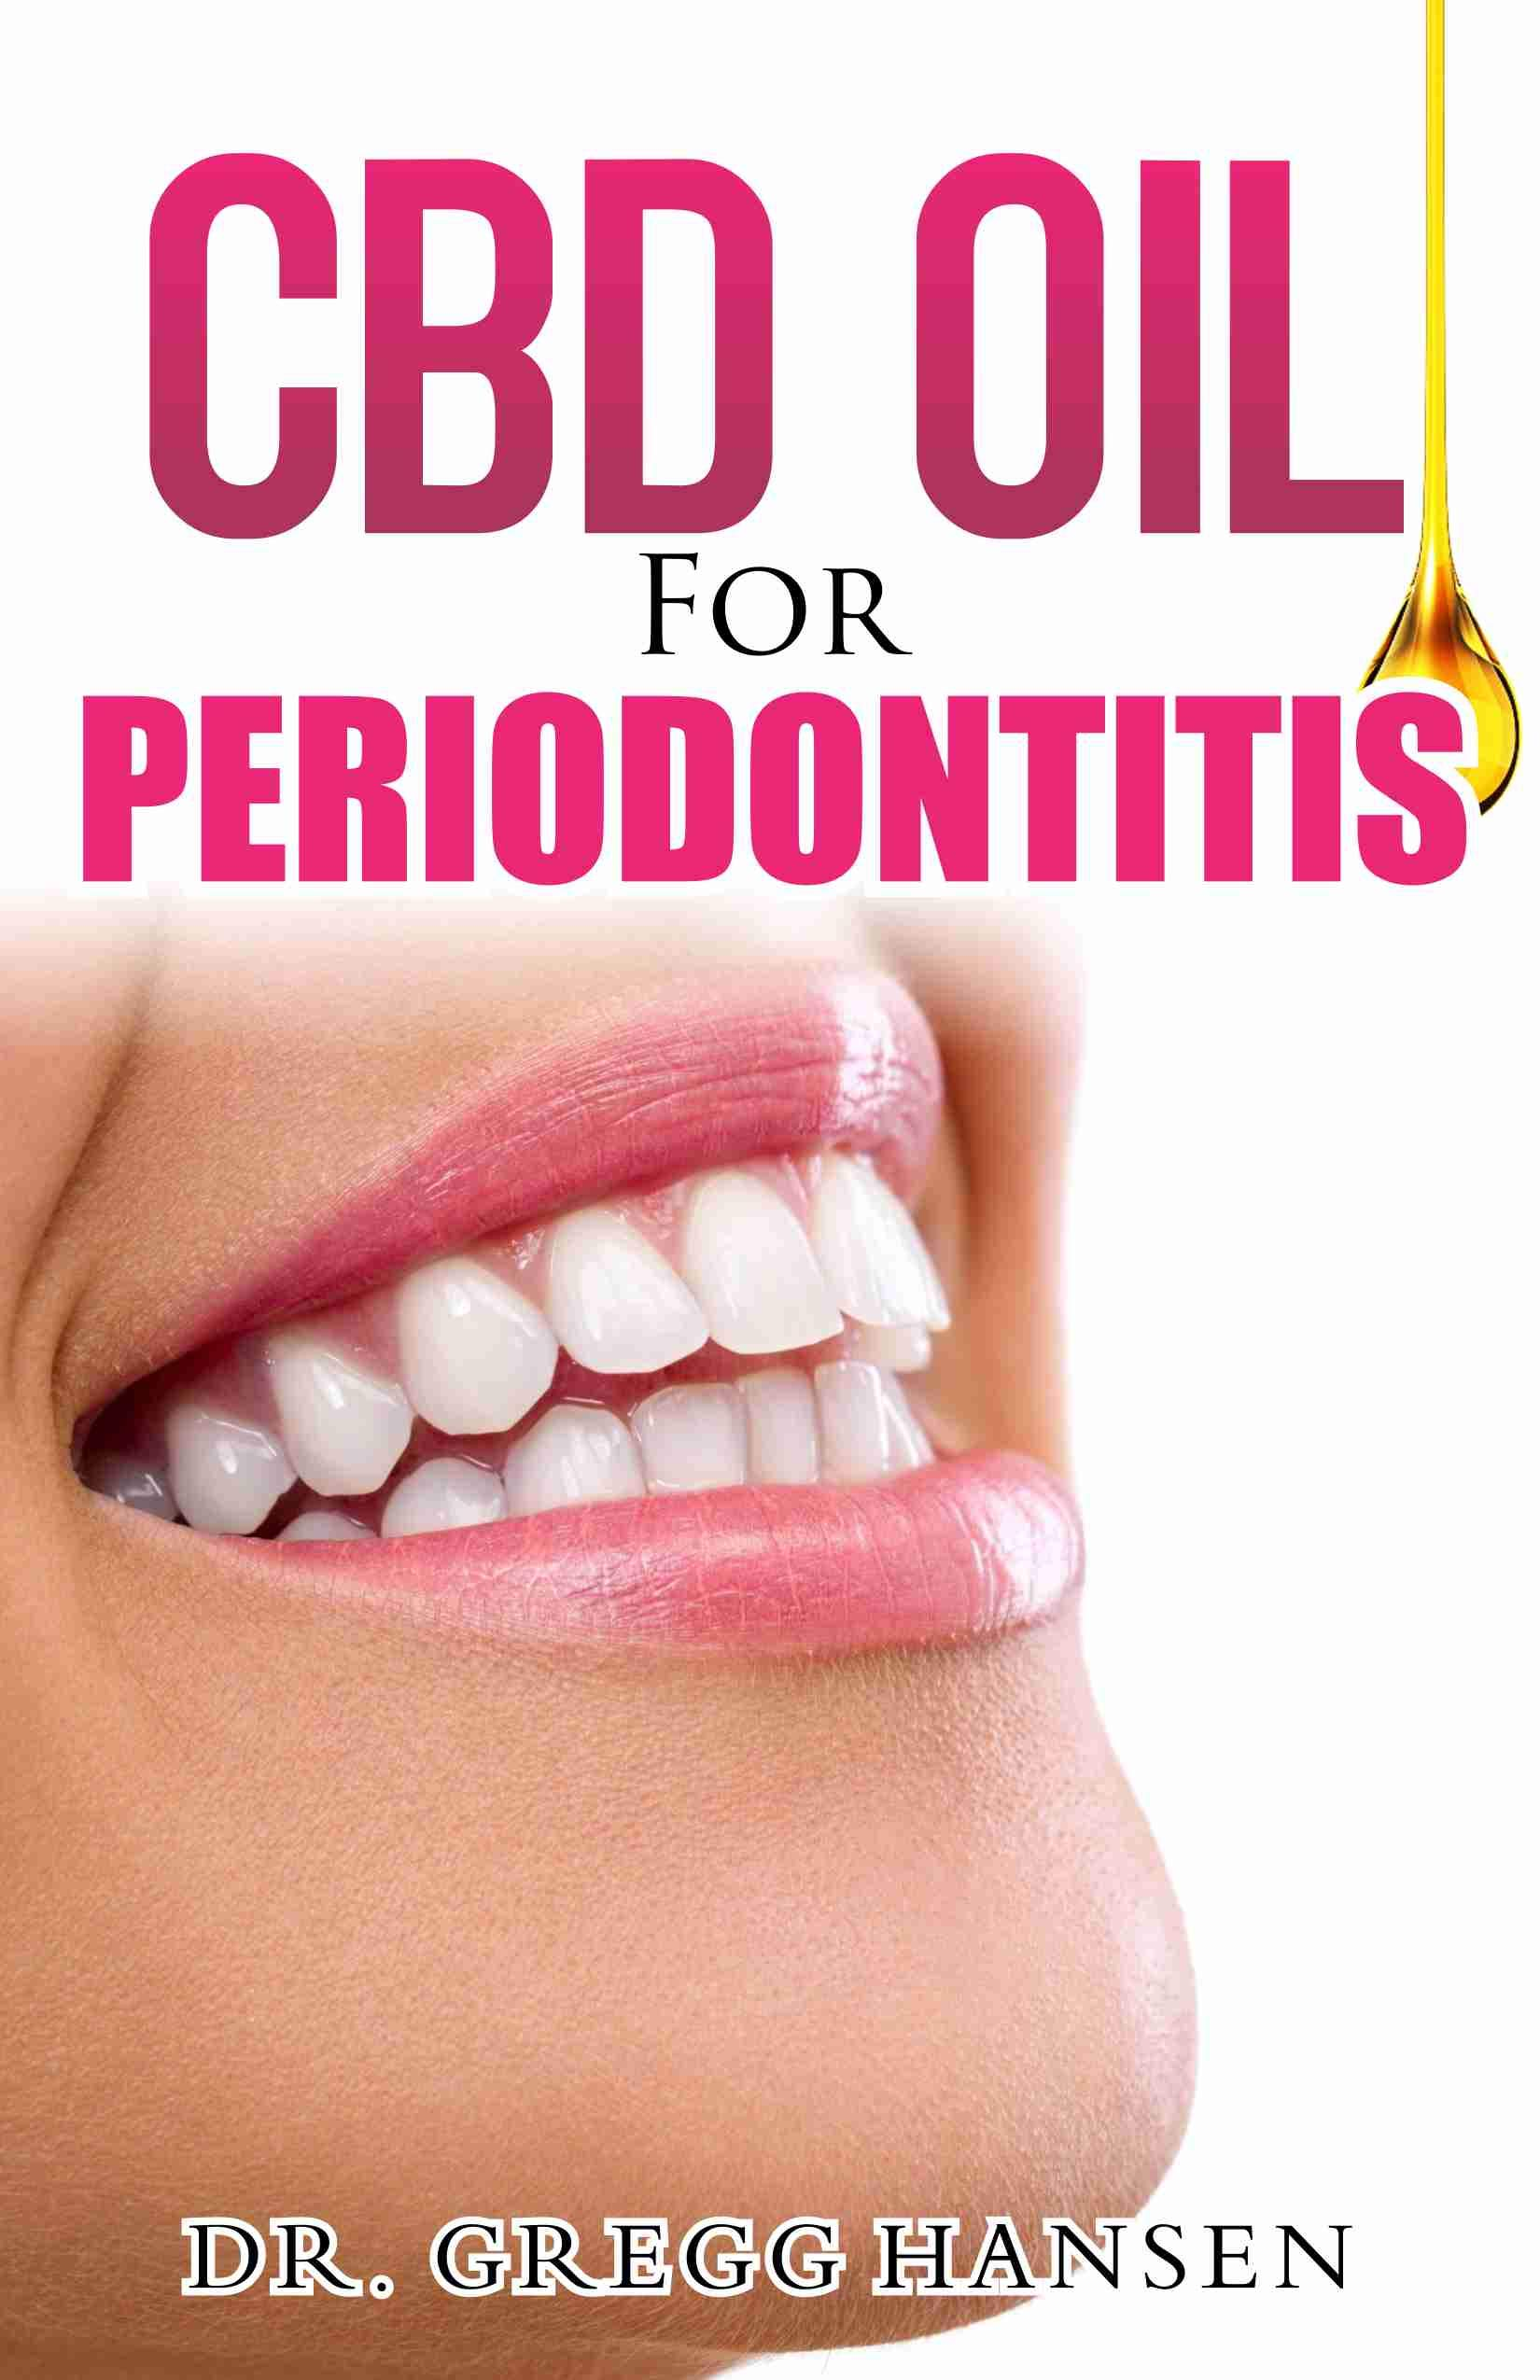 Oral Probiotics: Fighting Tooth Decay Periodontal Disease and Airway Infections Using Nature's Friendly Bacteria